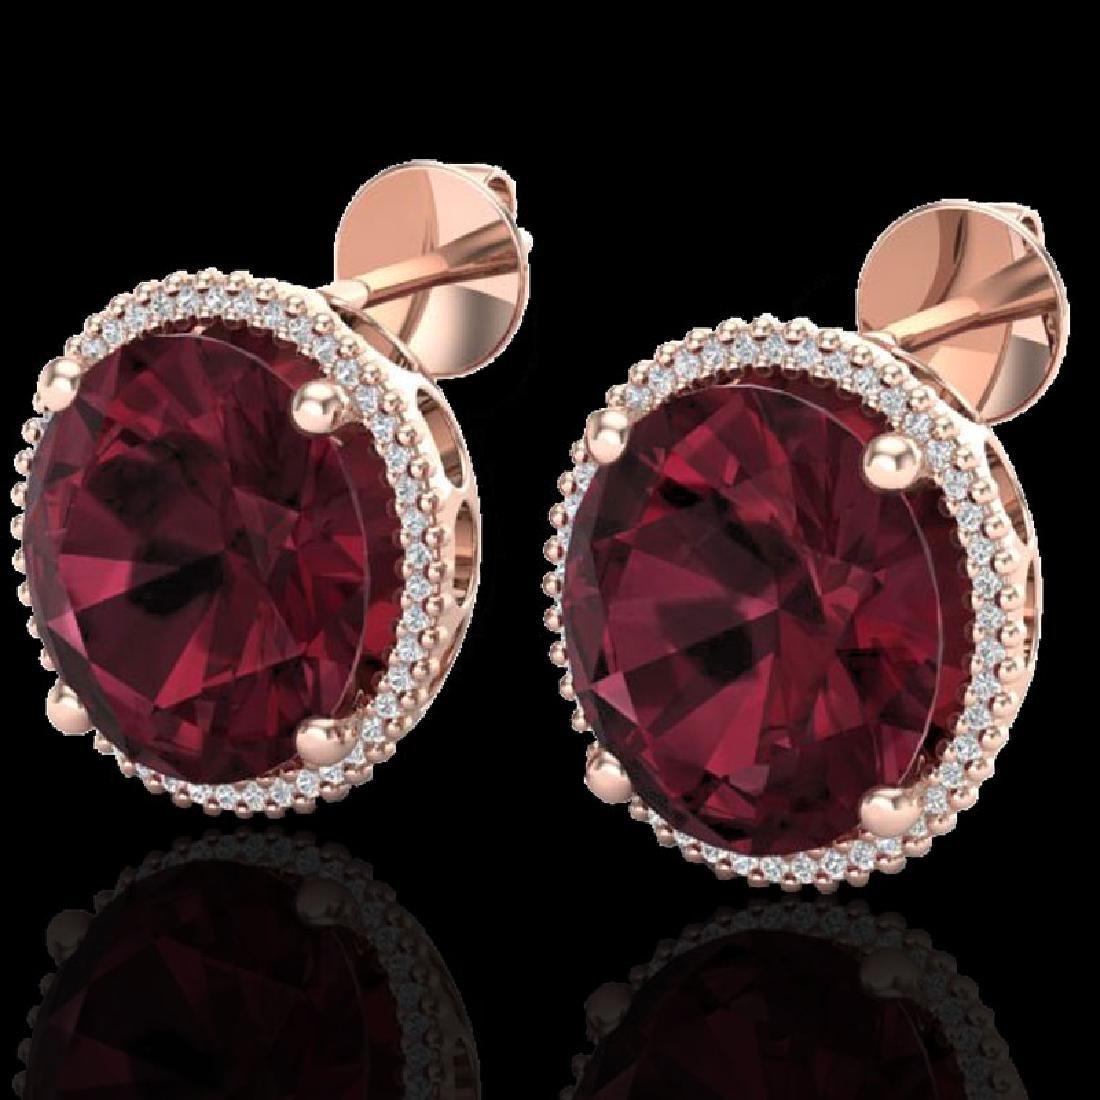 20 CTW Garnet & Micro Pave VS/SI Diamond Halo Earrings